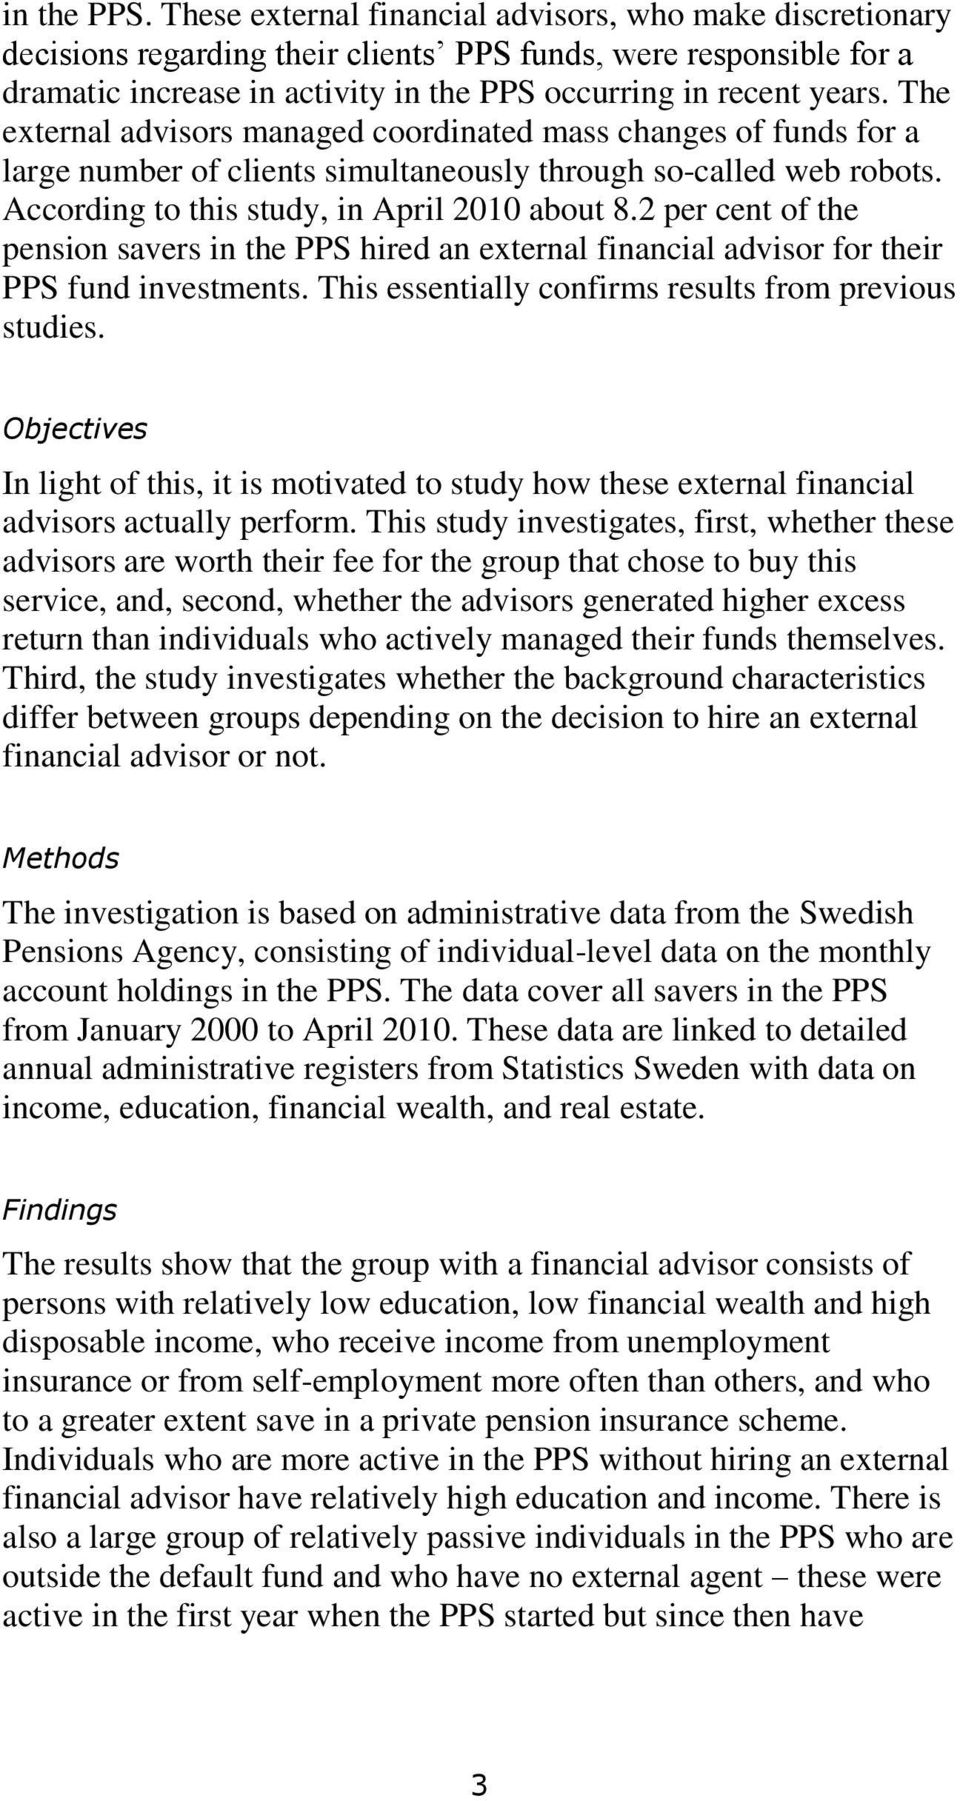 The external advisors managed coordinated mass changes of funds for a large number of clients simultaneously through so-called web robots. According to this study, in April 2010 about 8.